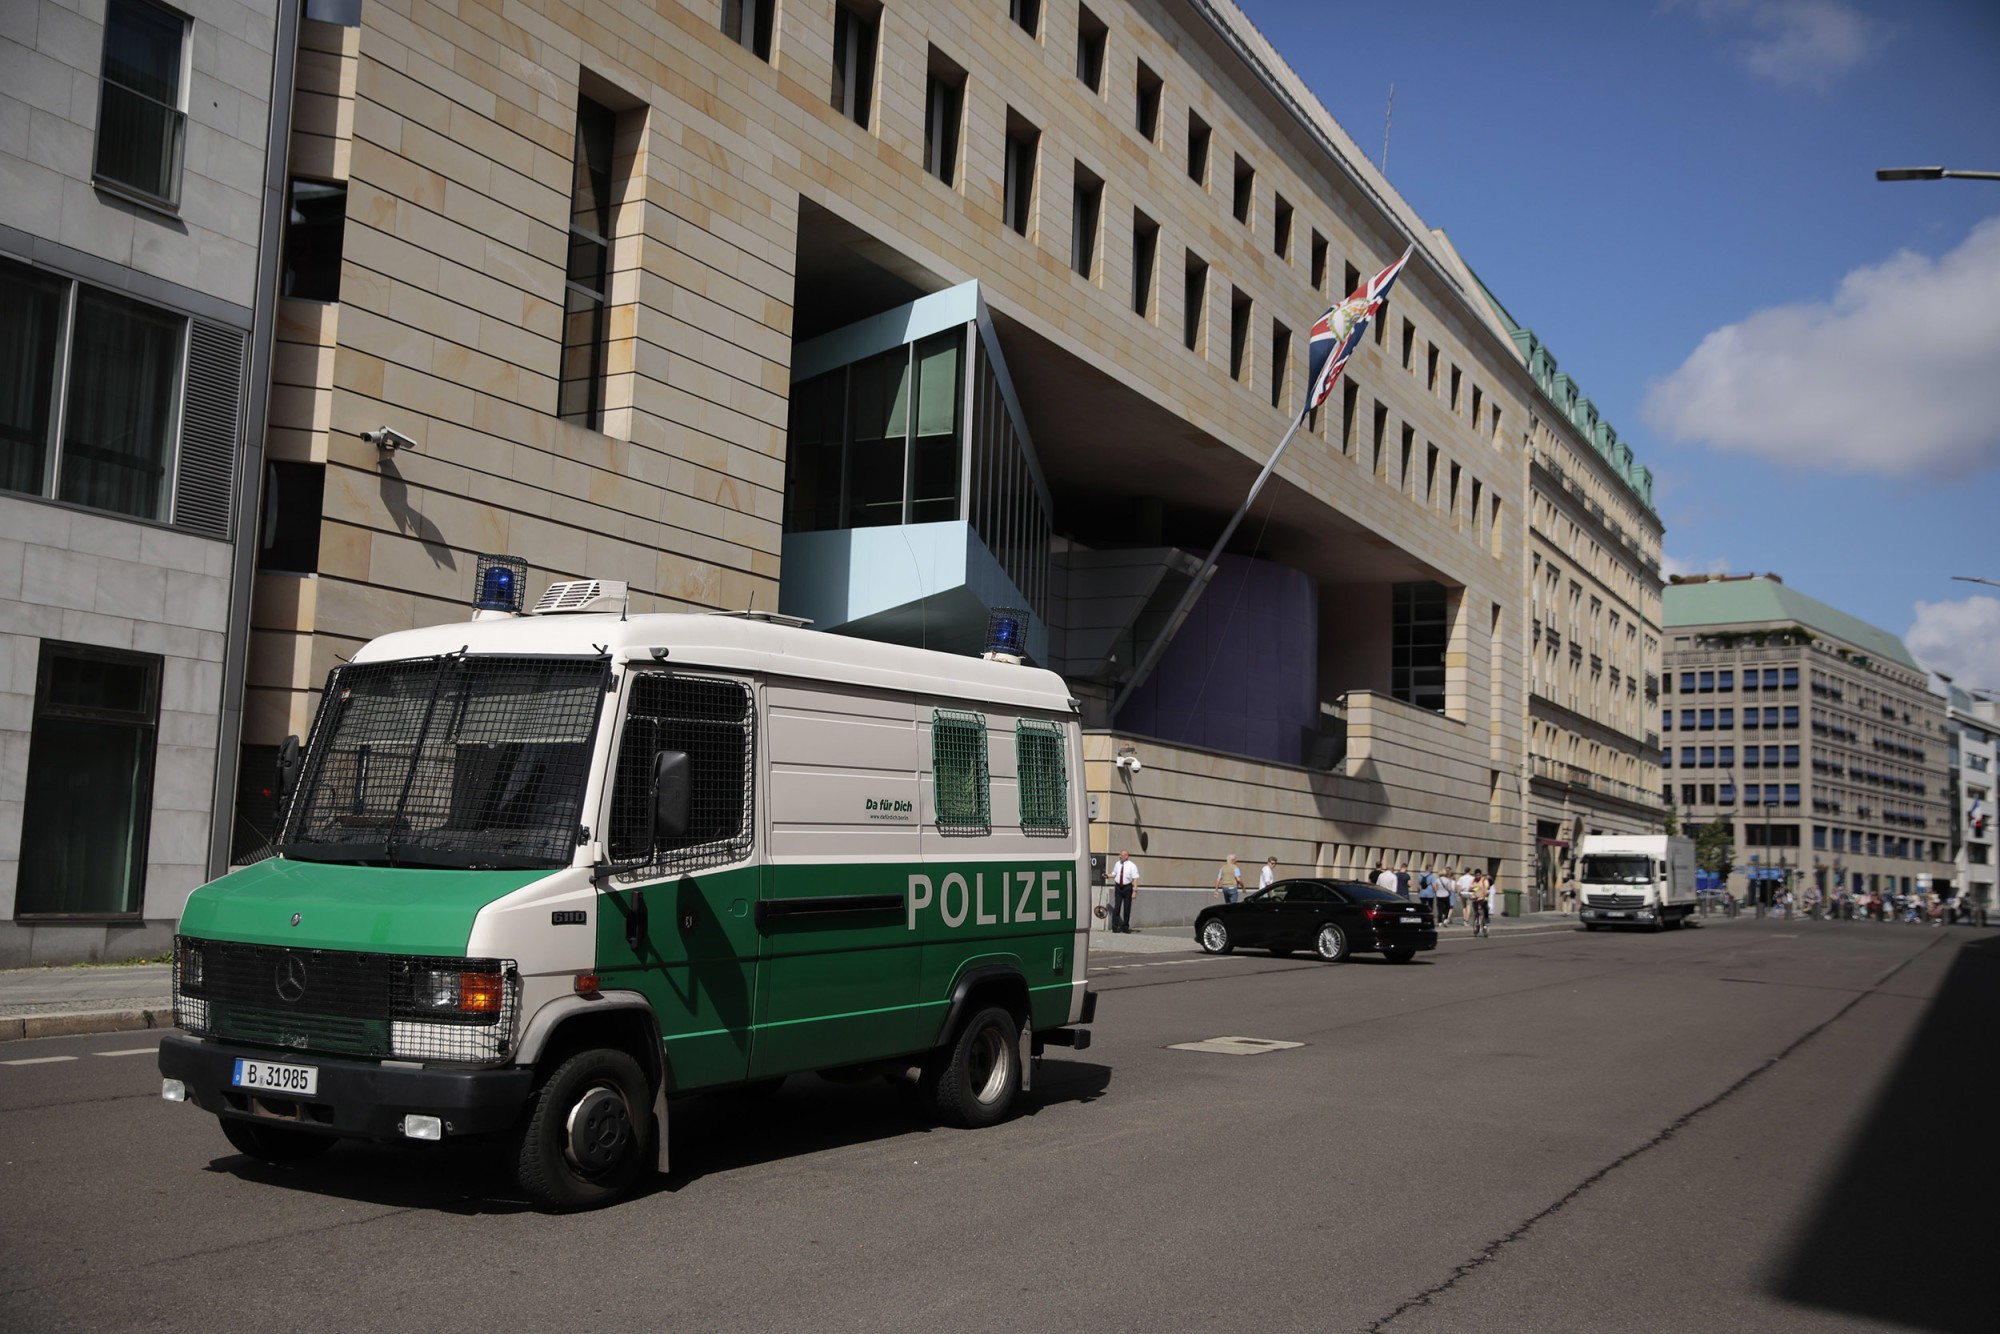 Germany arrests British Embassy worker suspected of spying for Russia